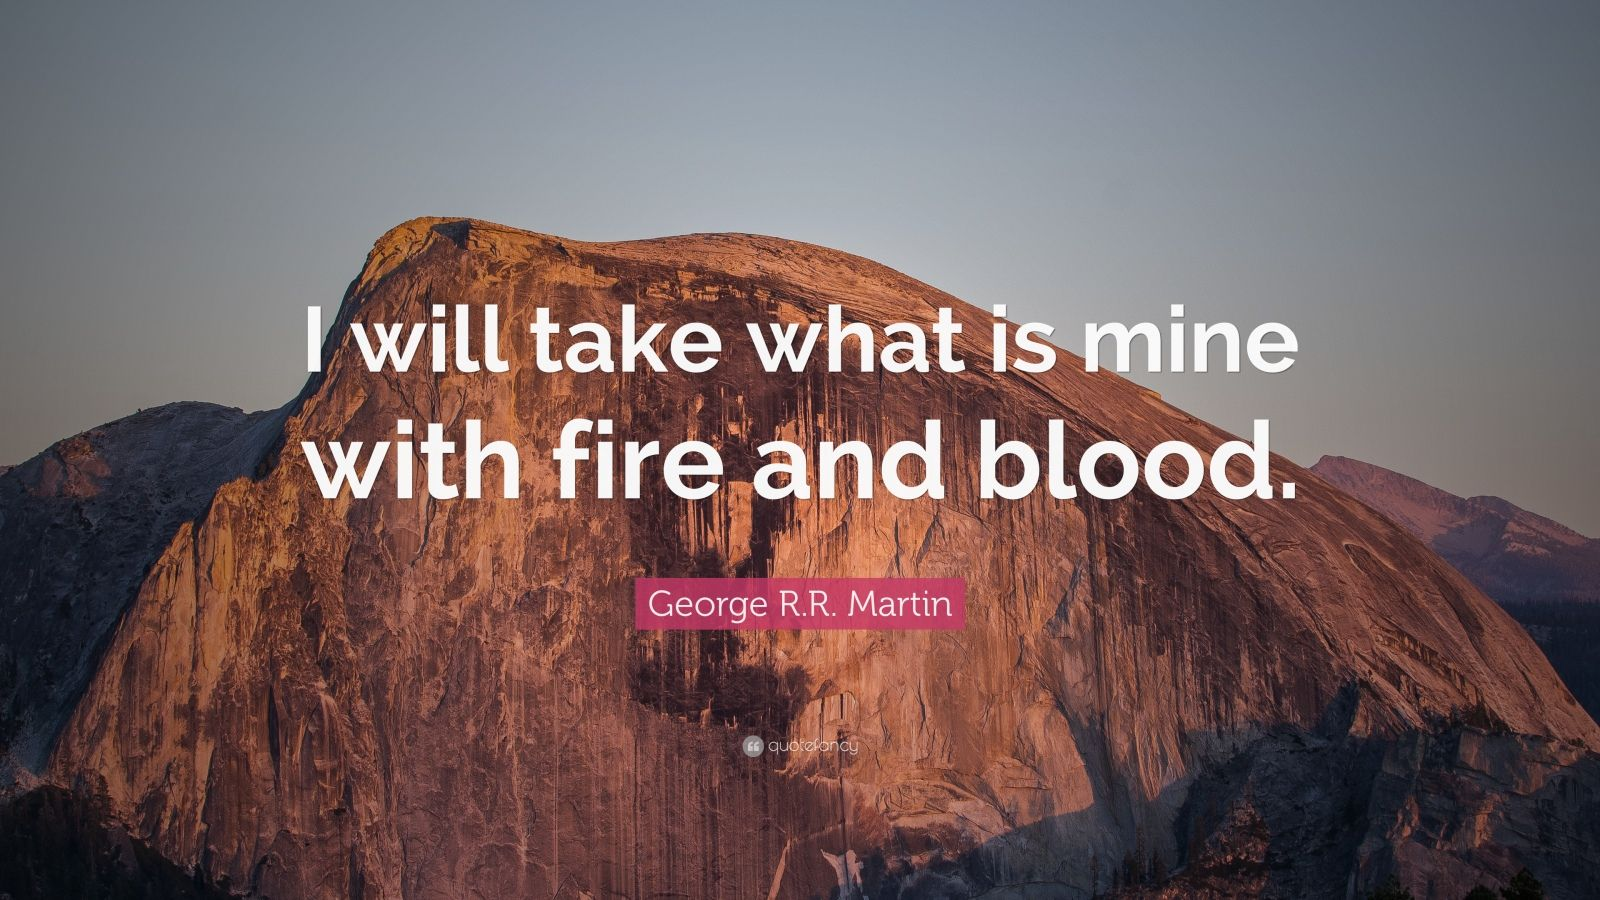 Jane Austen Quotes Wallpaper George R R Martin Quote I Will Take What Is Mine With